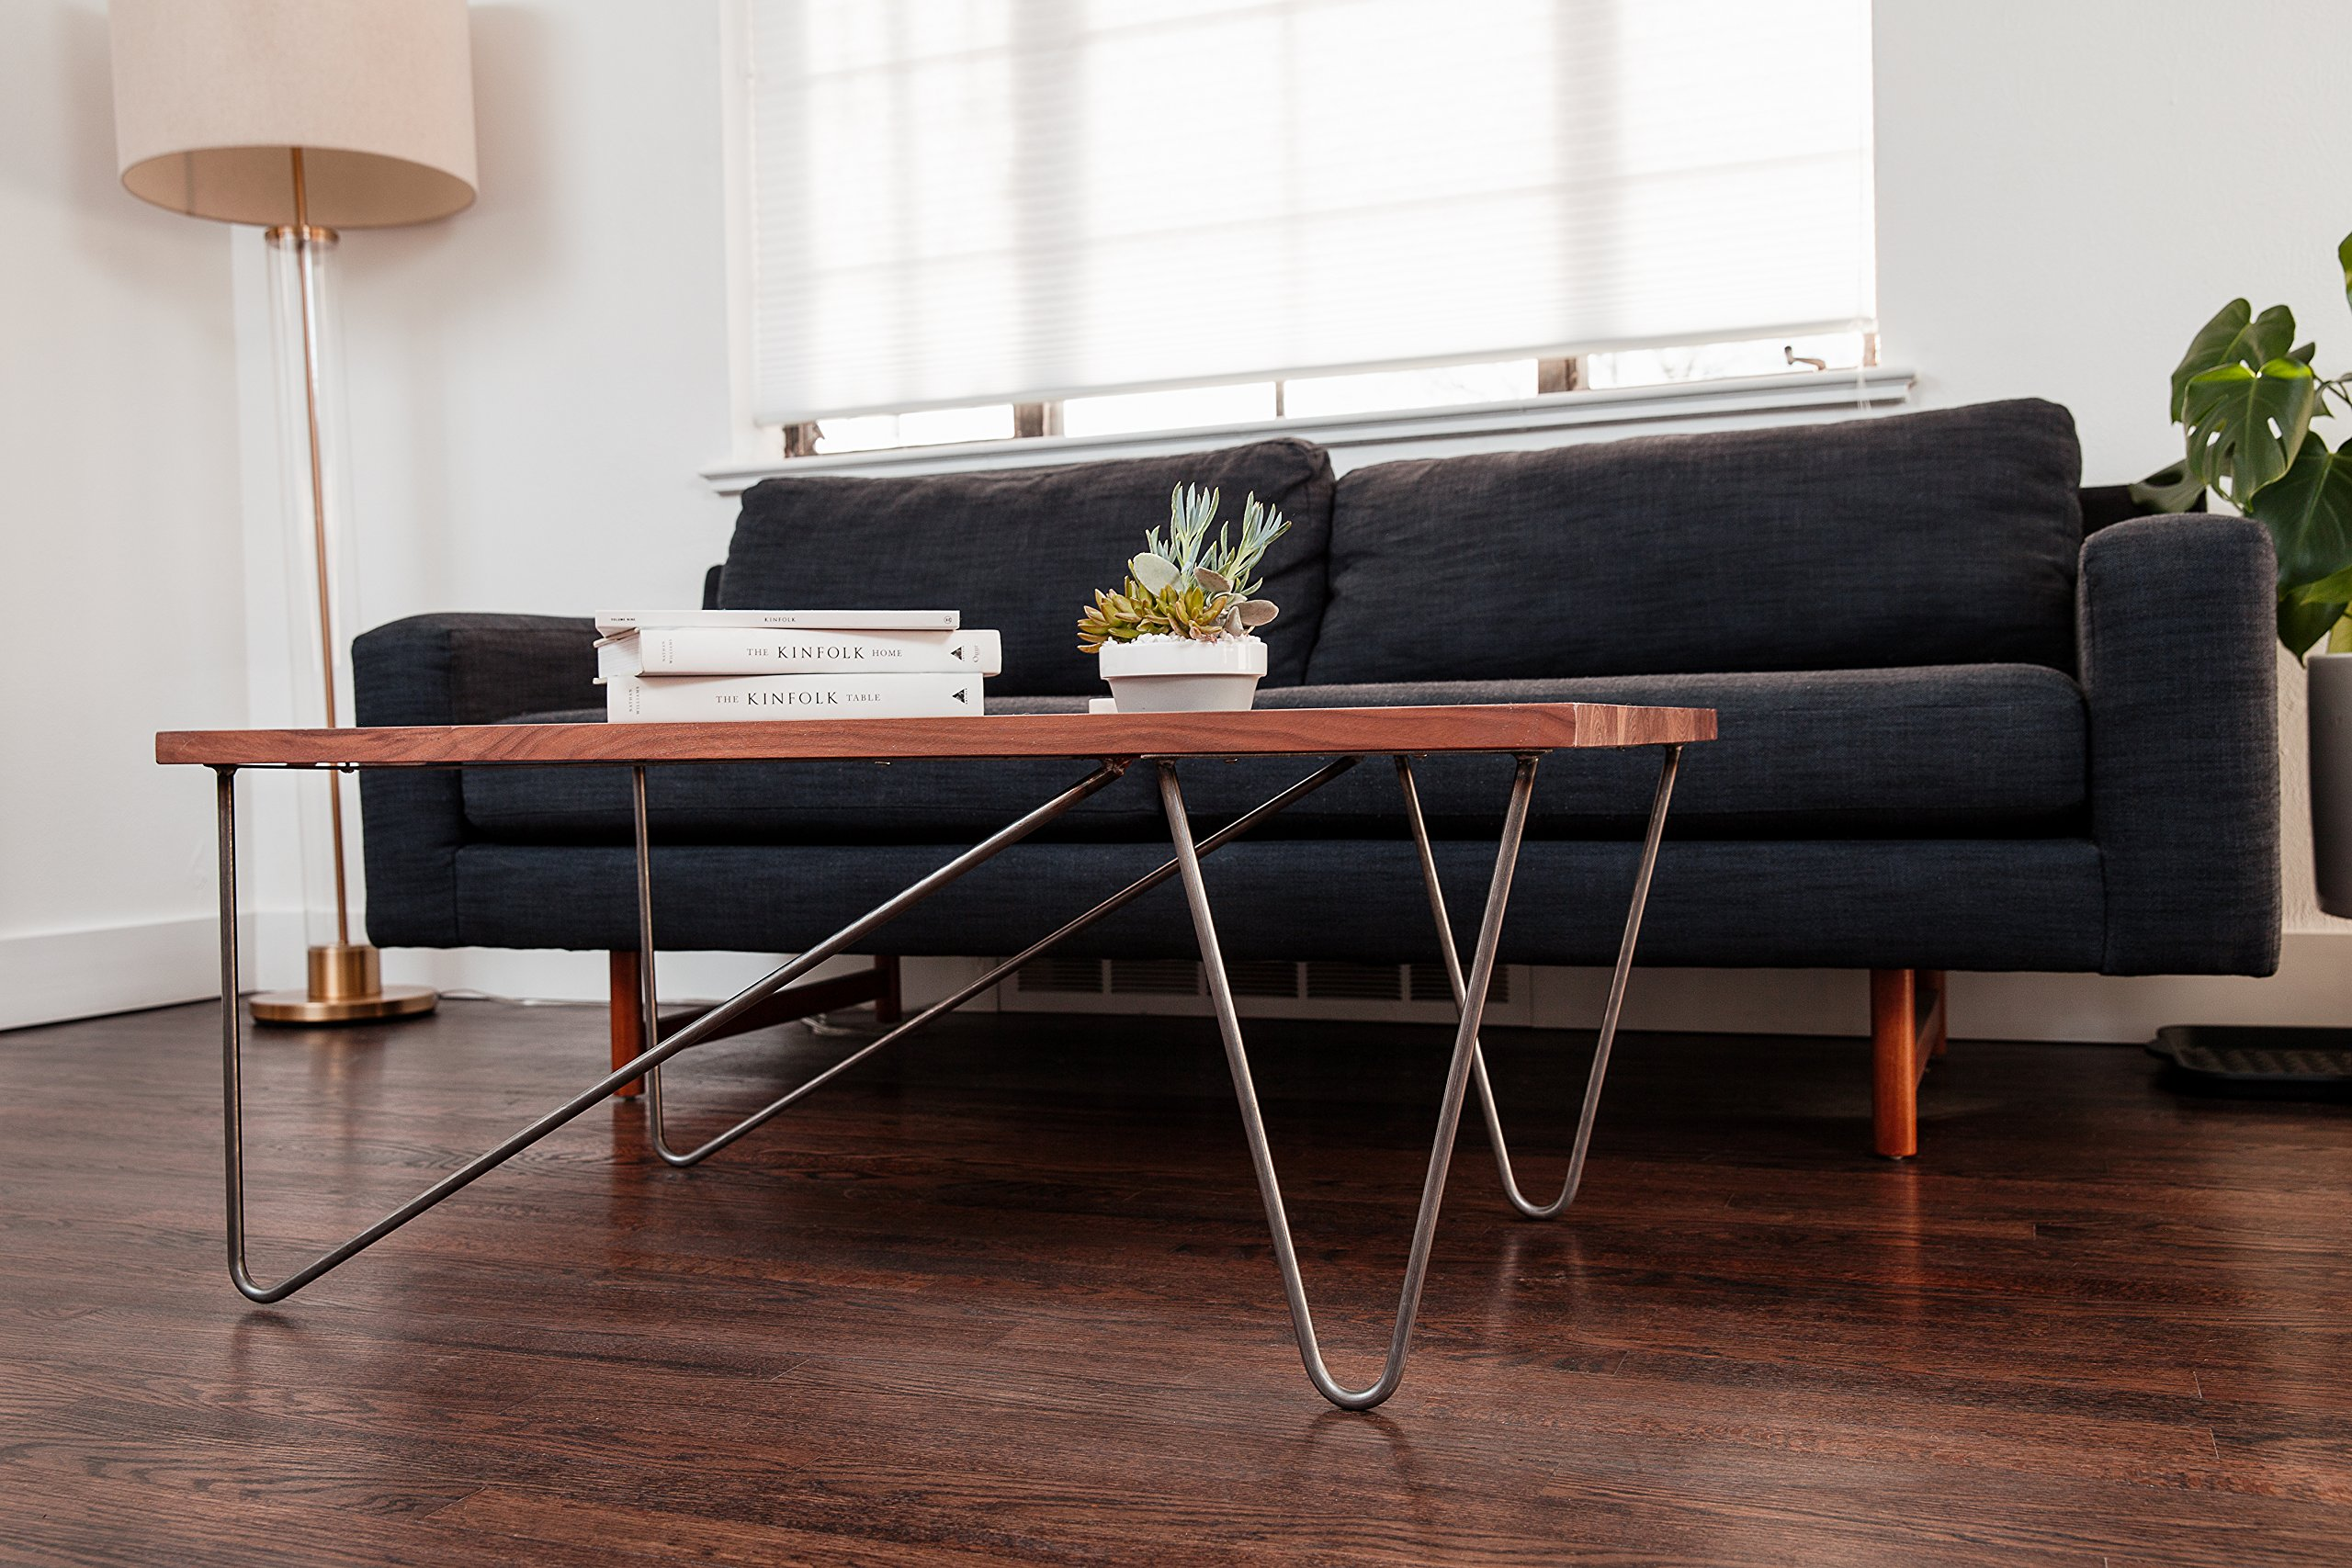 Off Set Hairpin Coffee Table Leg Set steel, Industrial raw metal finish - 16'' height, 1/2'' diameter - Perfect for DIY!